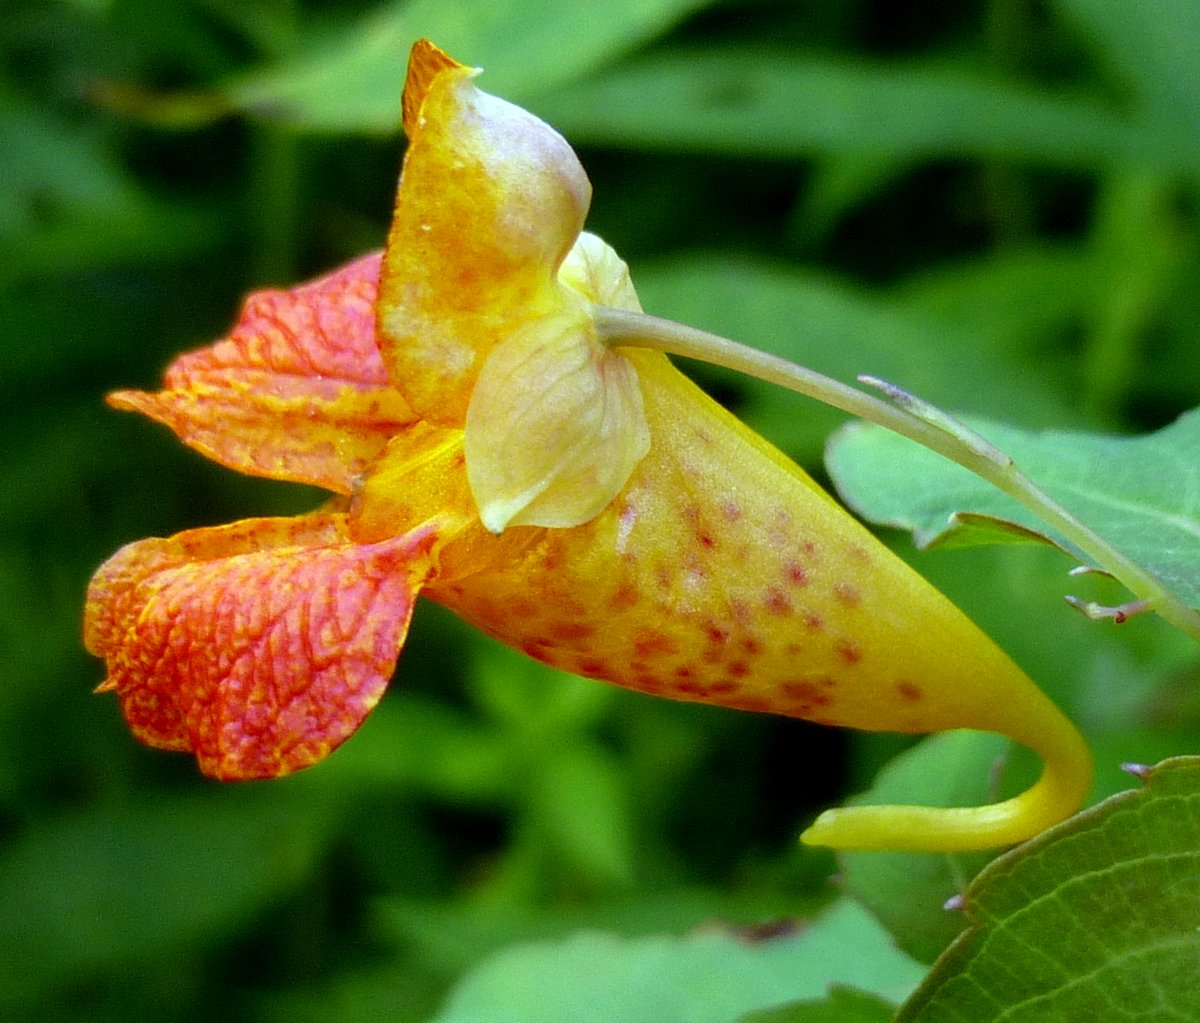 7. Spotted jewel Weed